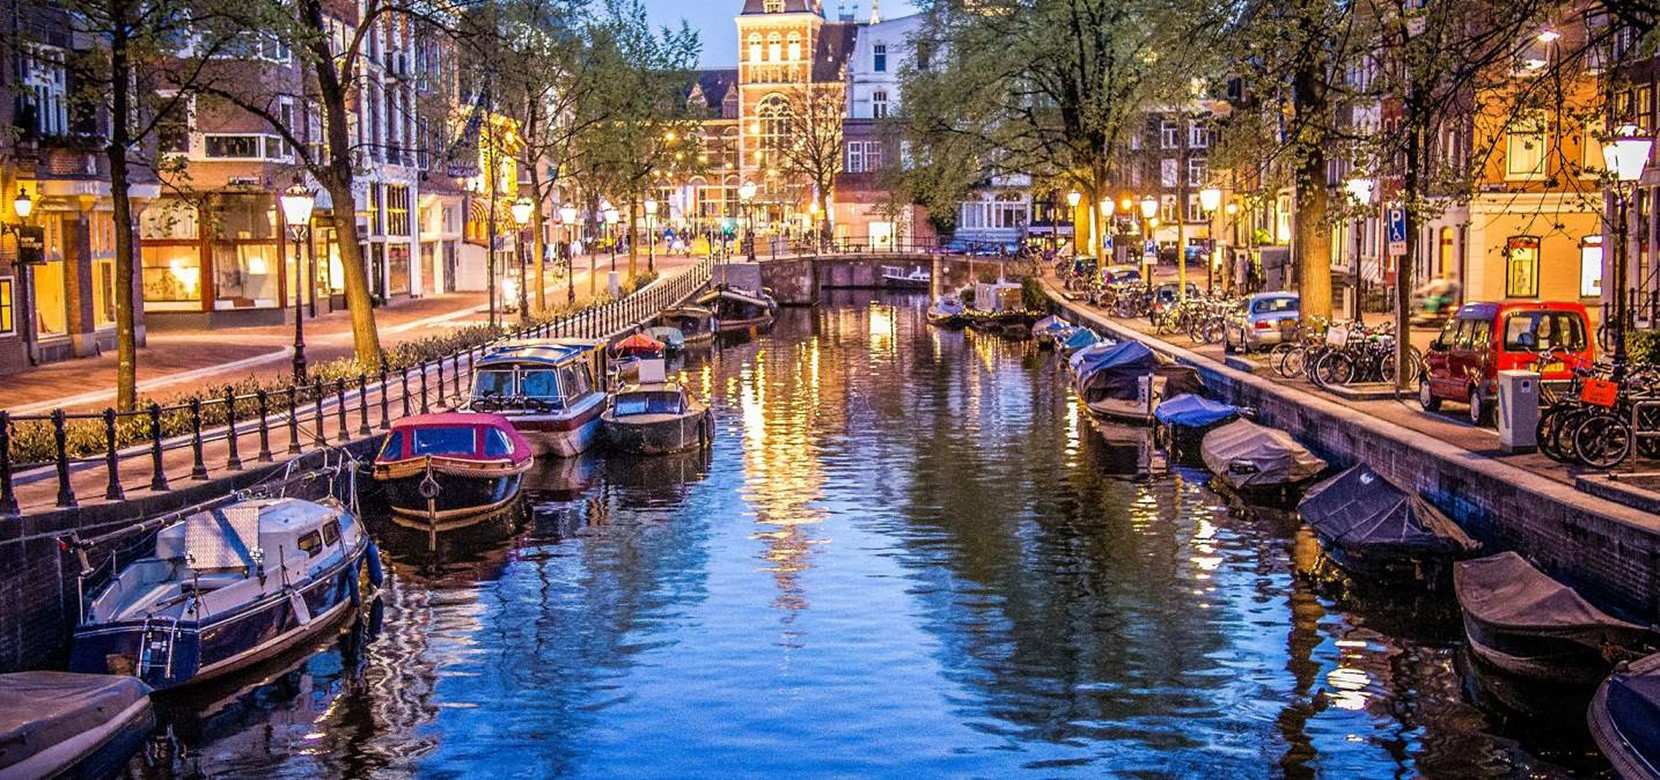 10 Fun Facts About Amsterdam's Canals | Tours & Tickets